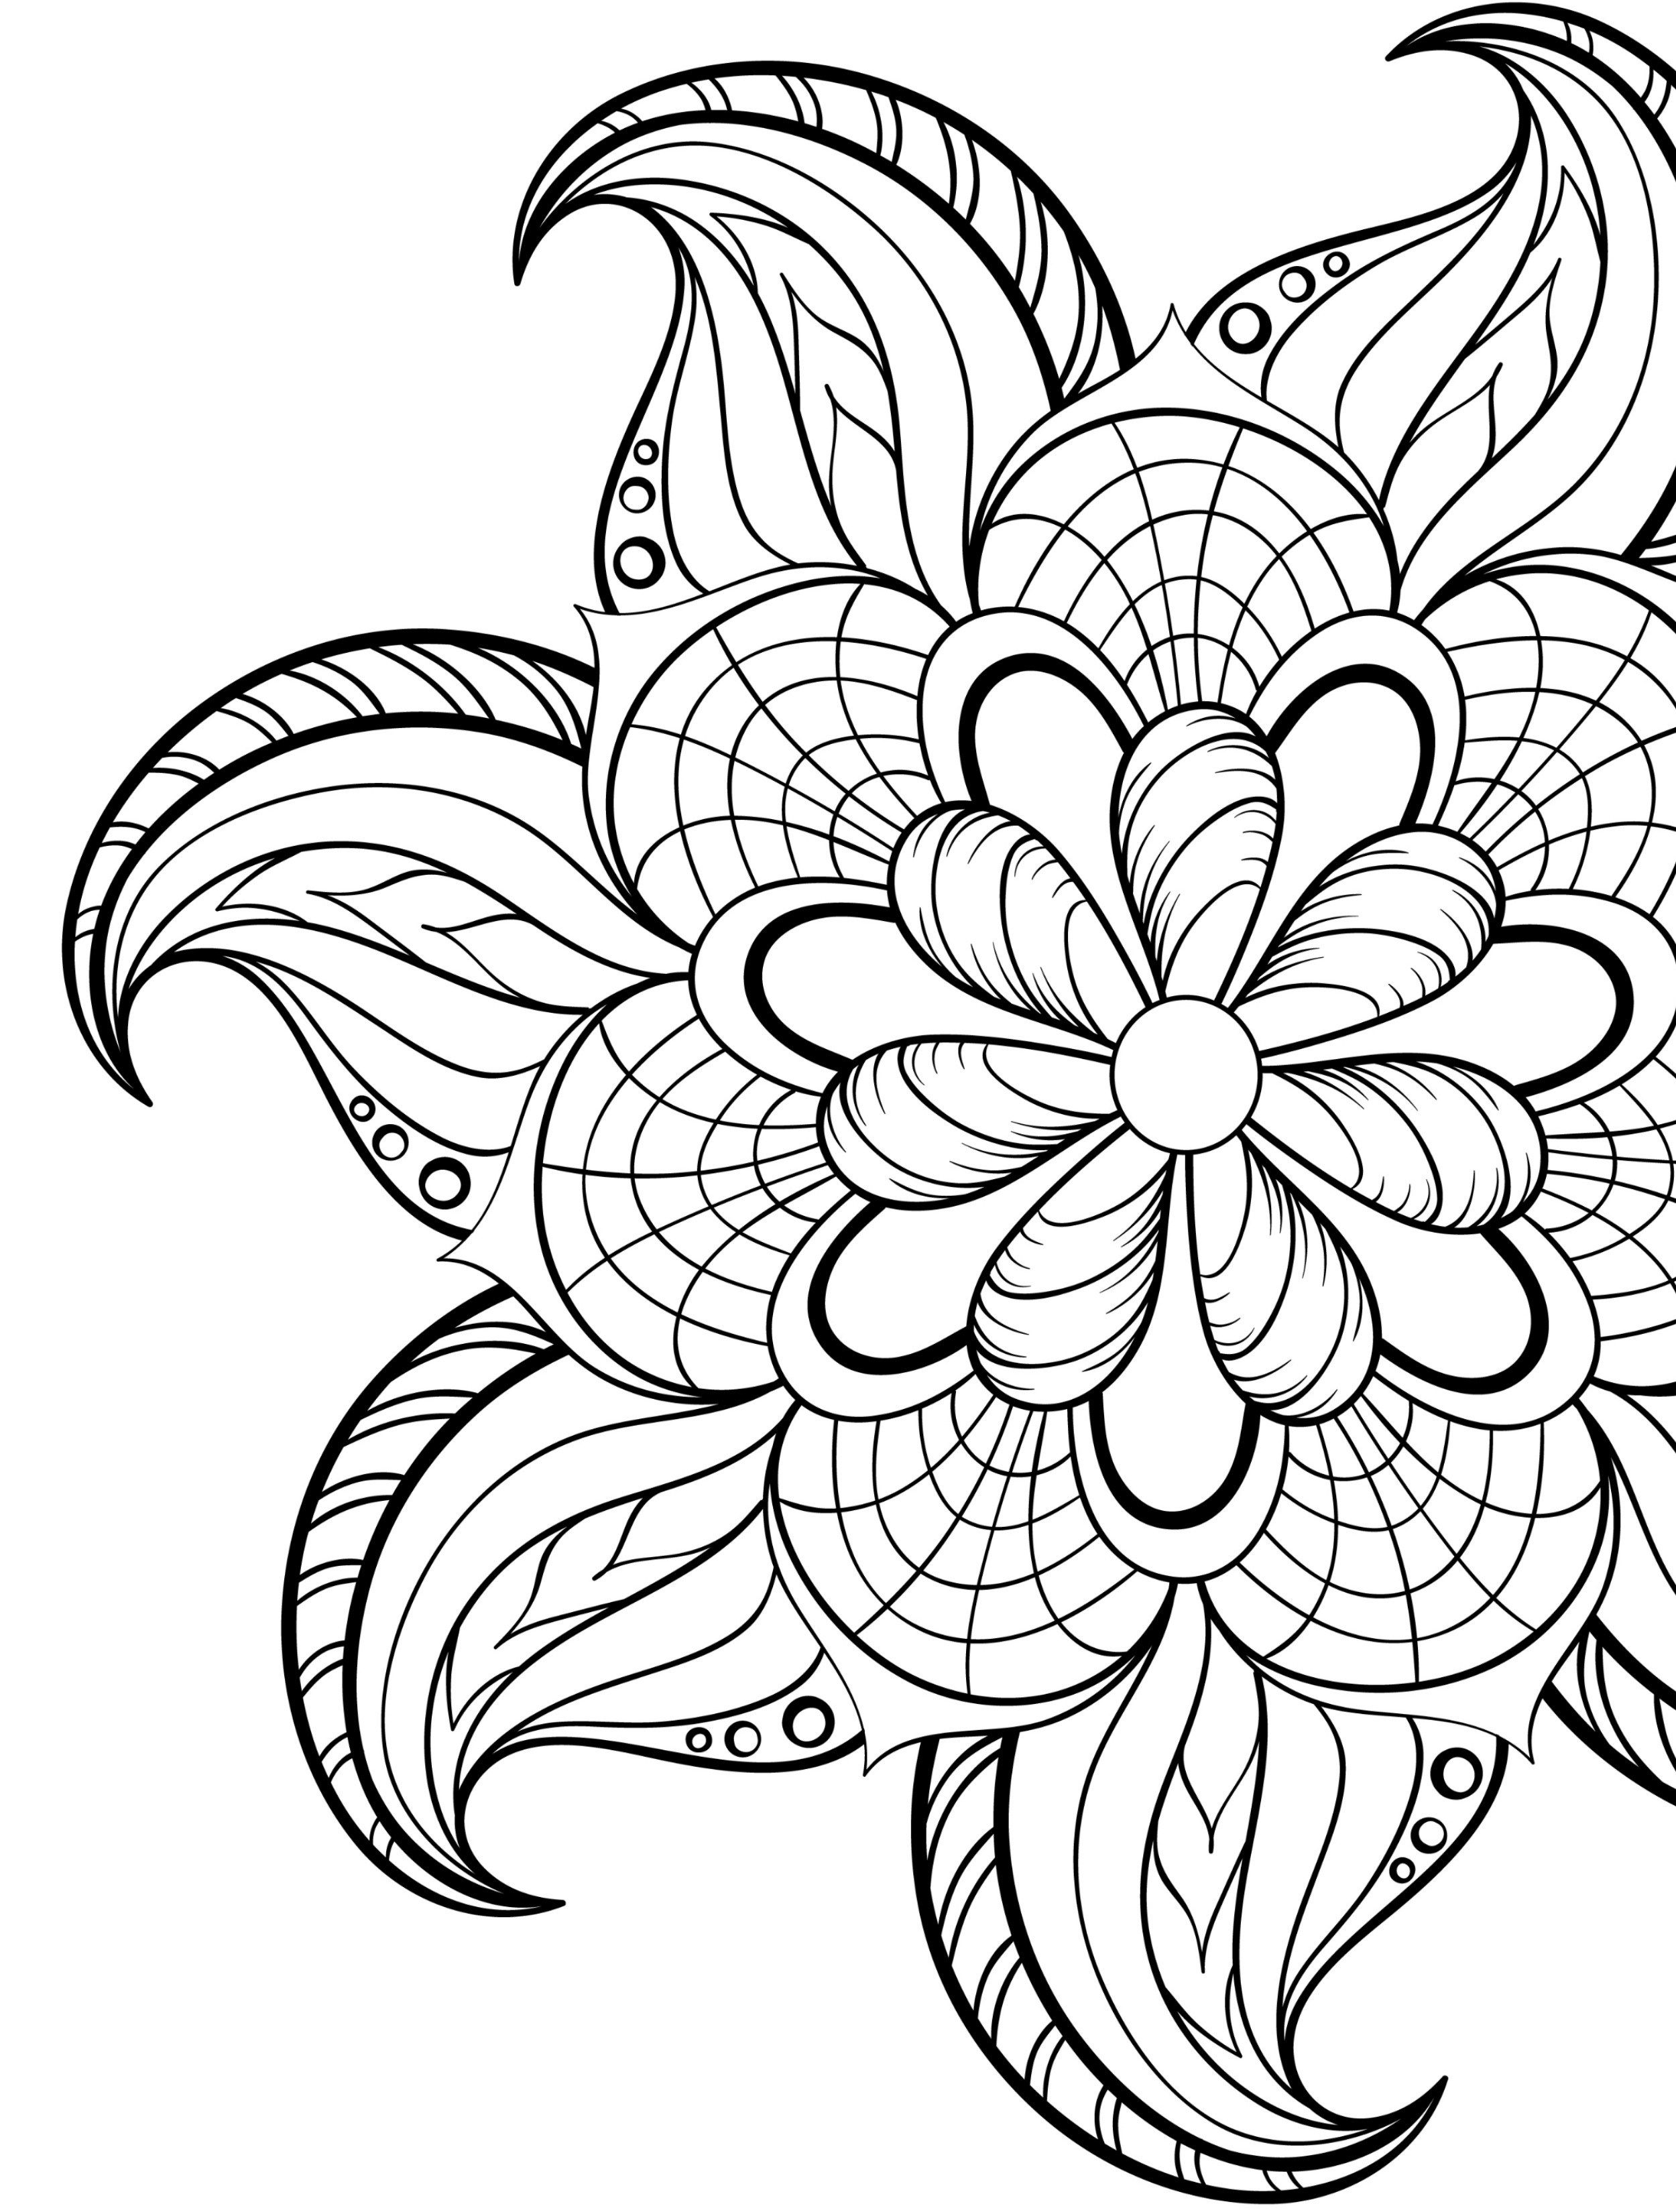 20 Gorgeous Free Printable Adult Coloring Pages   Tattoos